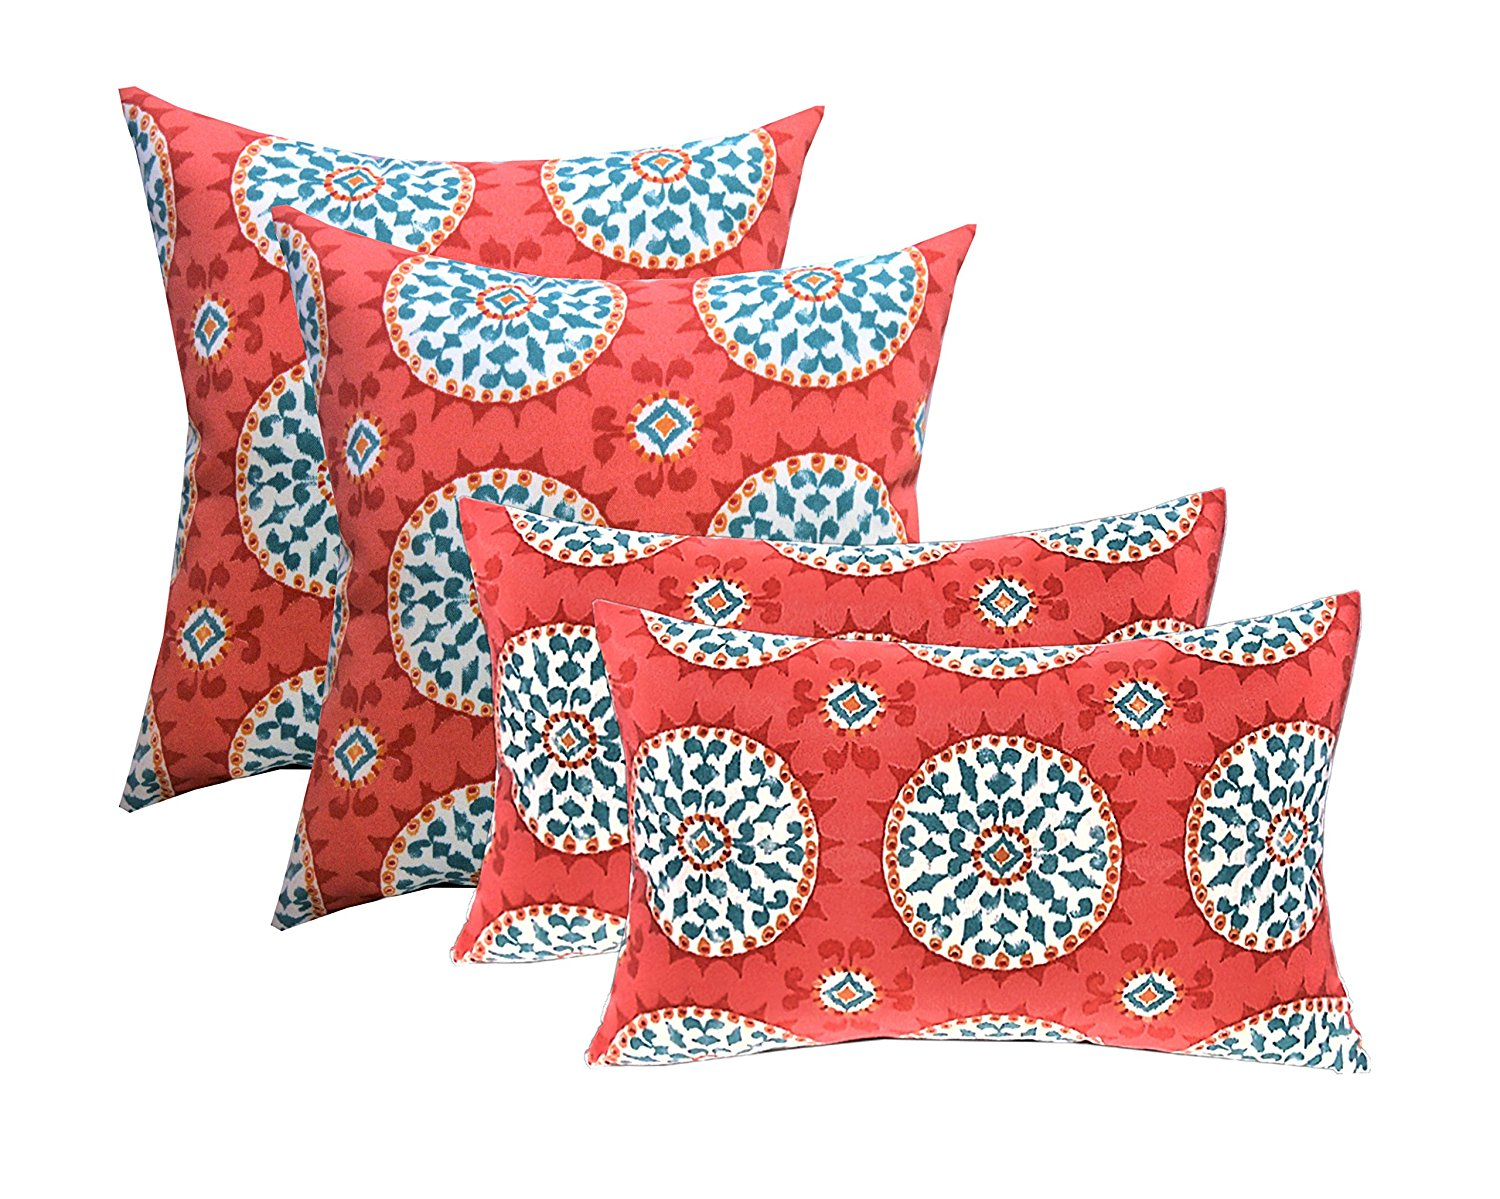 """Set of 4 Outdoor Pink Artistic Floral Pillows 17/"""" Square /& 12/"""" x 20/"""" Rectangle"""